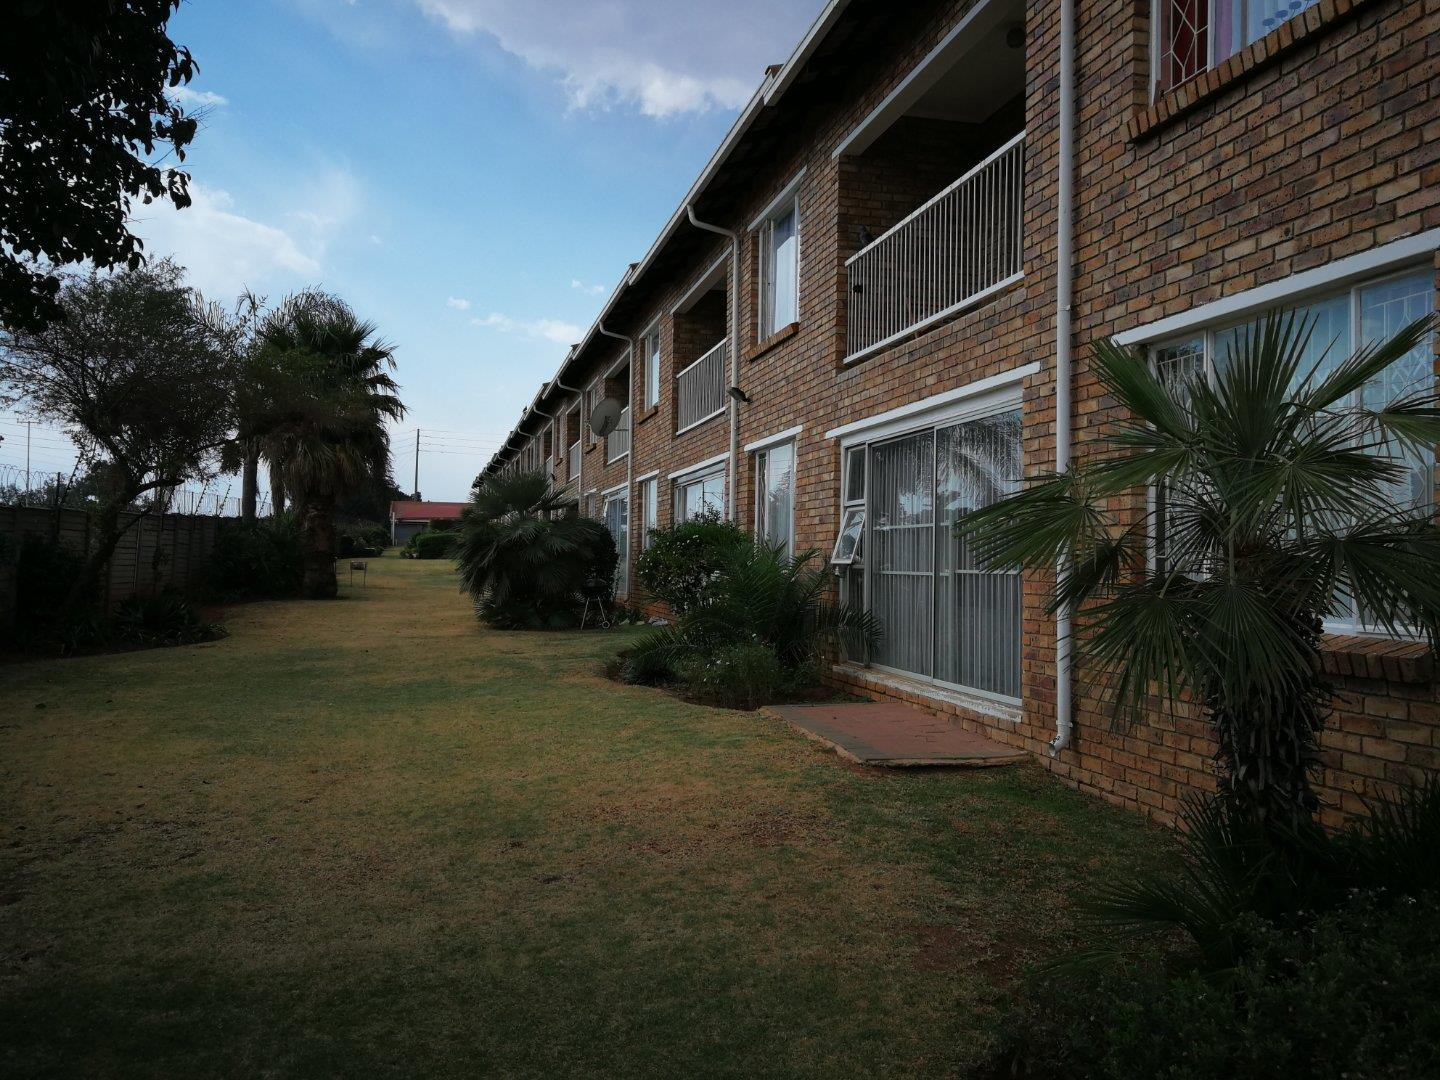 2 Bedroom  Apartment for Sale in Krugersdorp - Gauteng